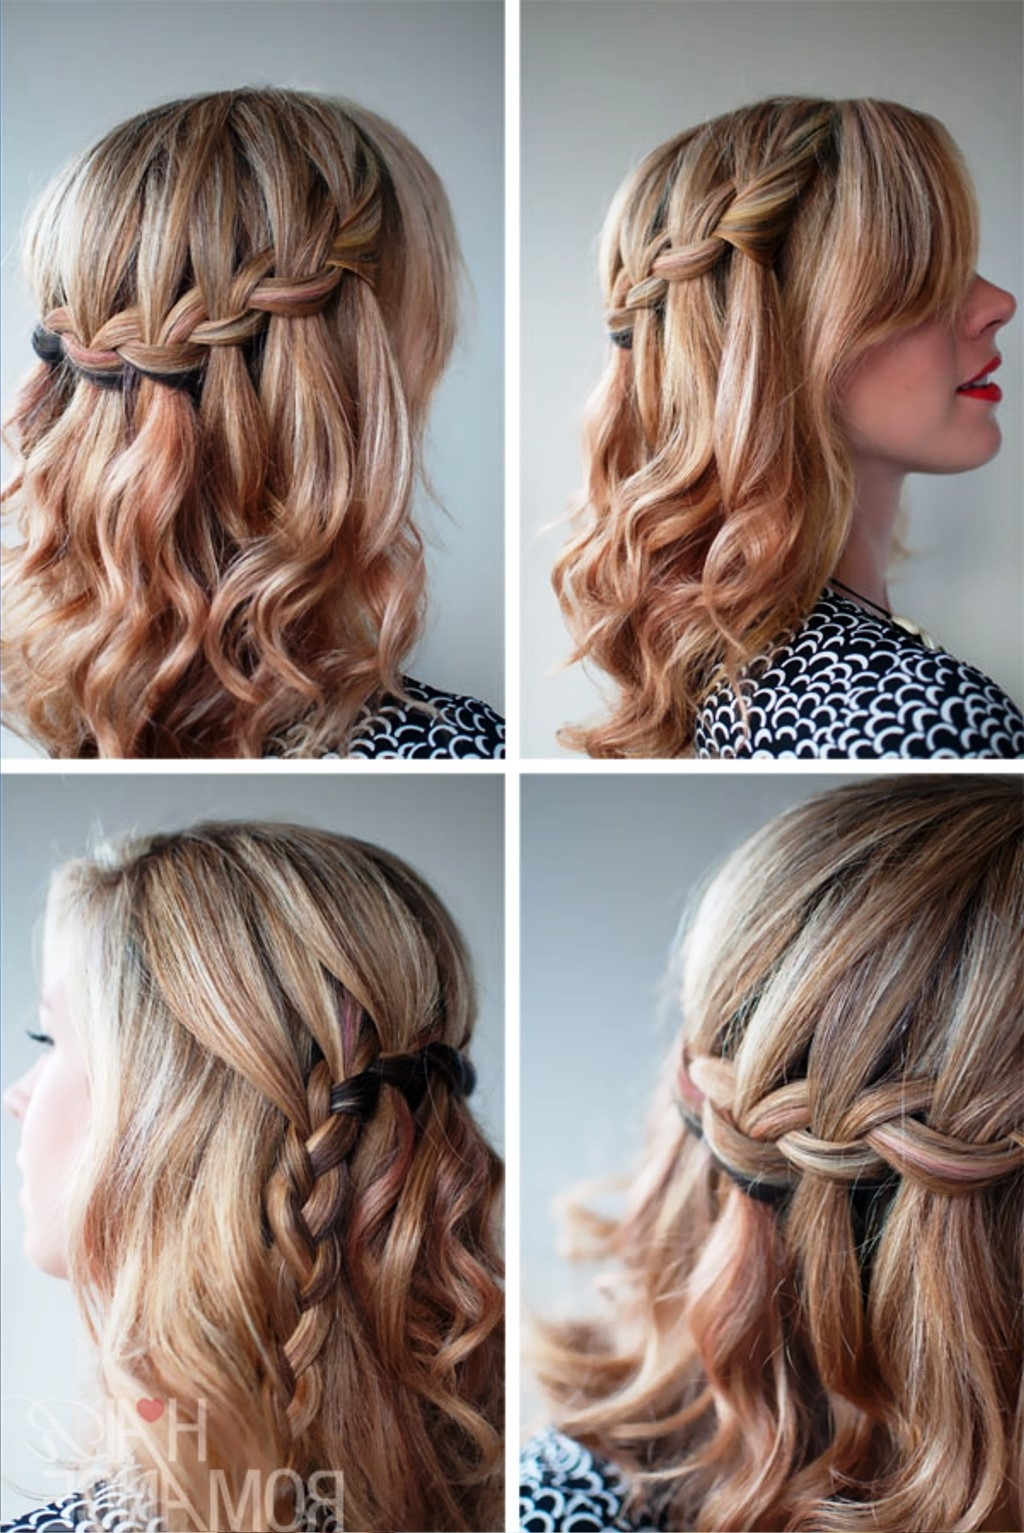 Pictures Of The Waterfall Braid Half Updo 2013 Within Braided Half Updo Hairstyles (View 13 of 15)